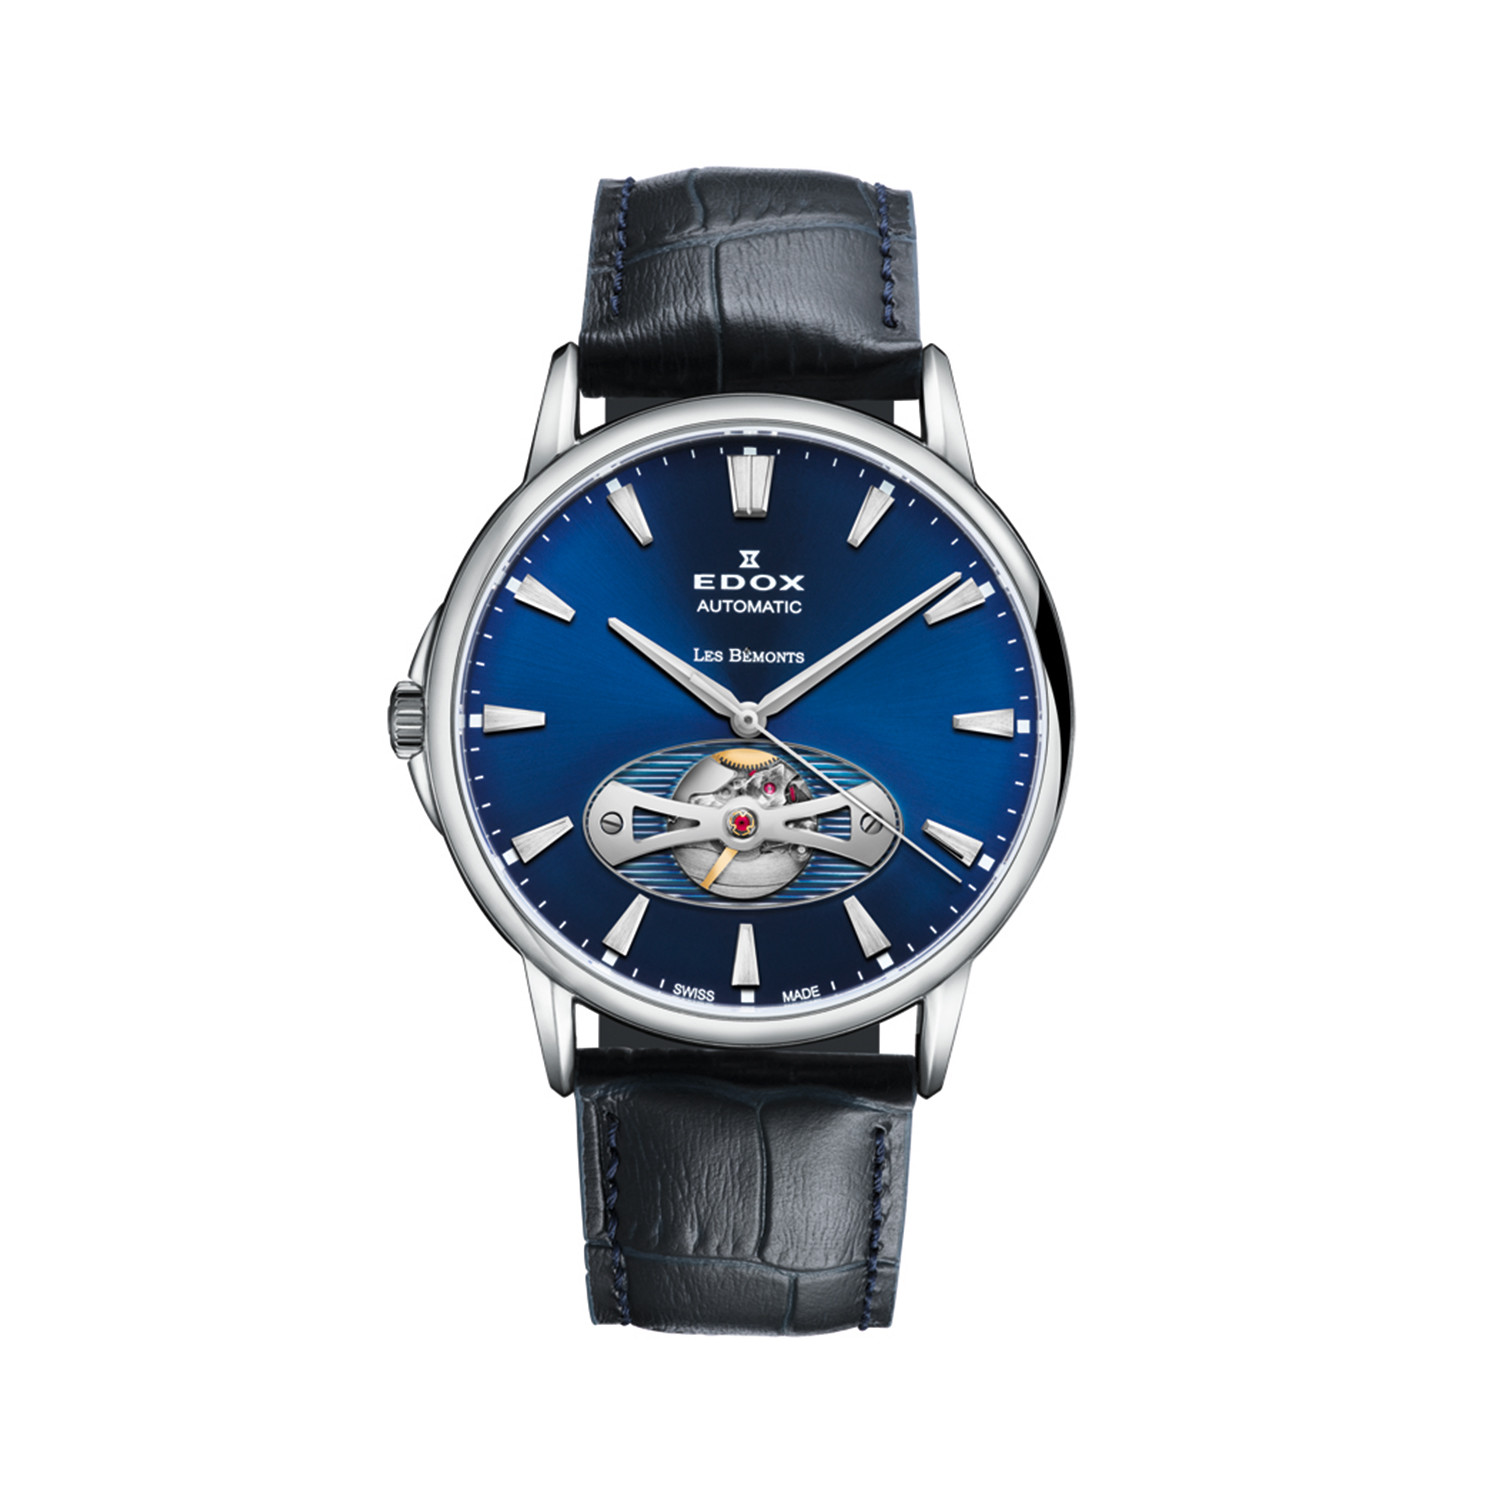 Click image for larger version.  Name:edox-les-bemonts-automatic-mens-watch-85021-3-buin_1.jpg Views:1773 Size:186.7 KB ID:8628090